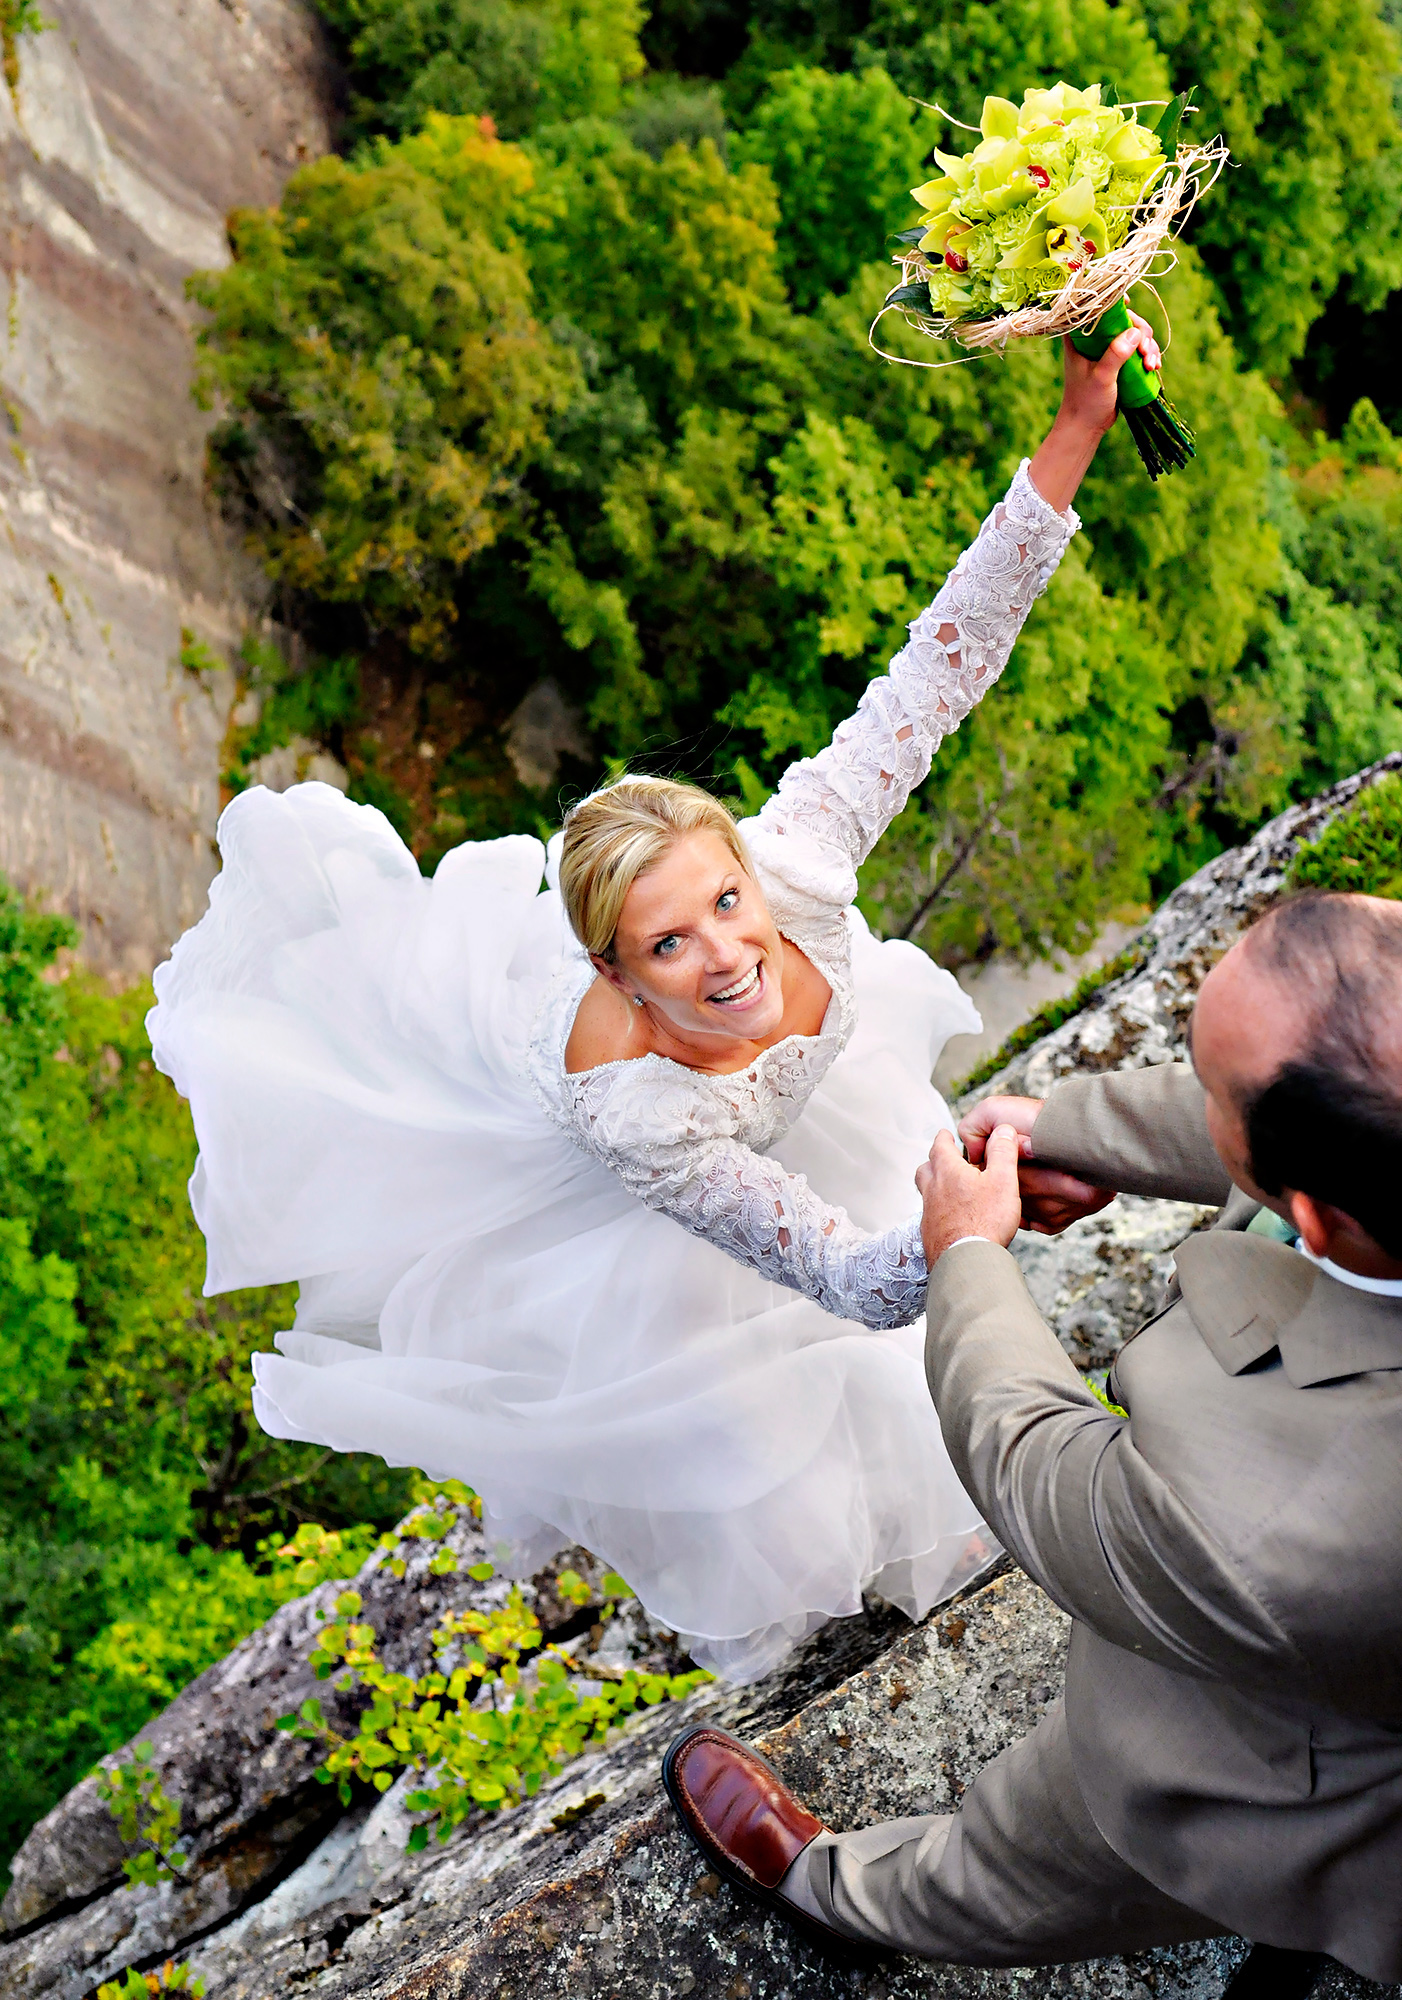 Bride And Groom Christie Sulkoski Kevin Coleman On The White Mountains Of New Hampshire